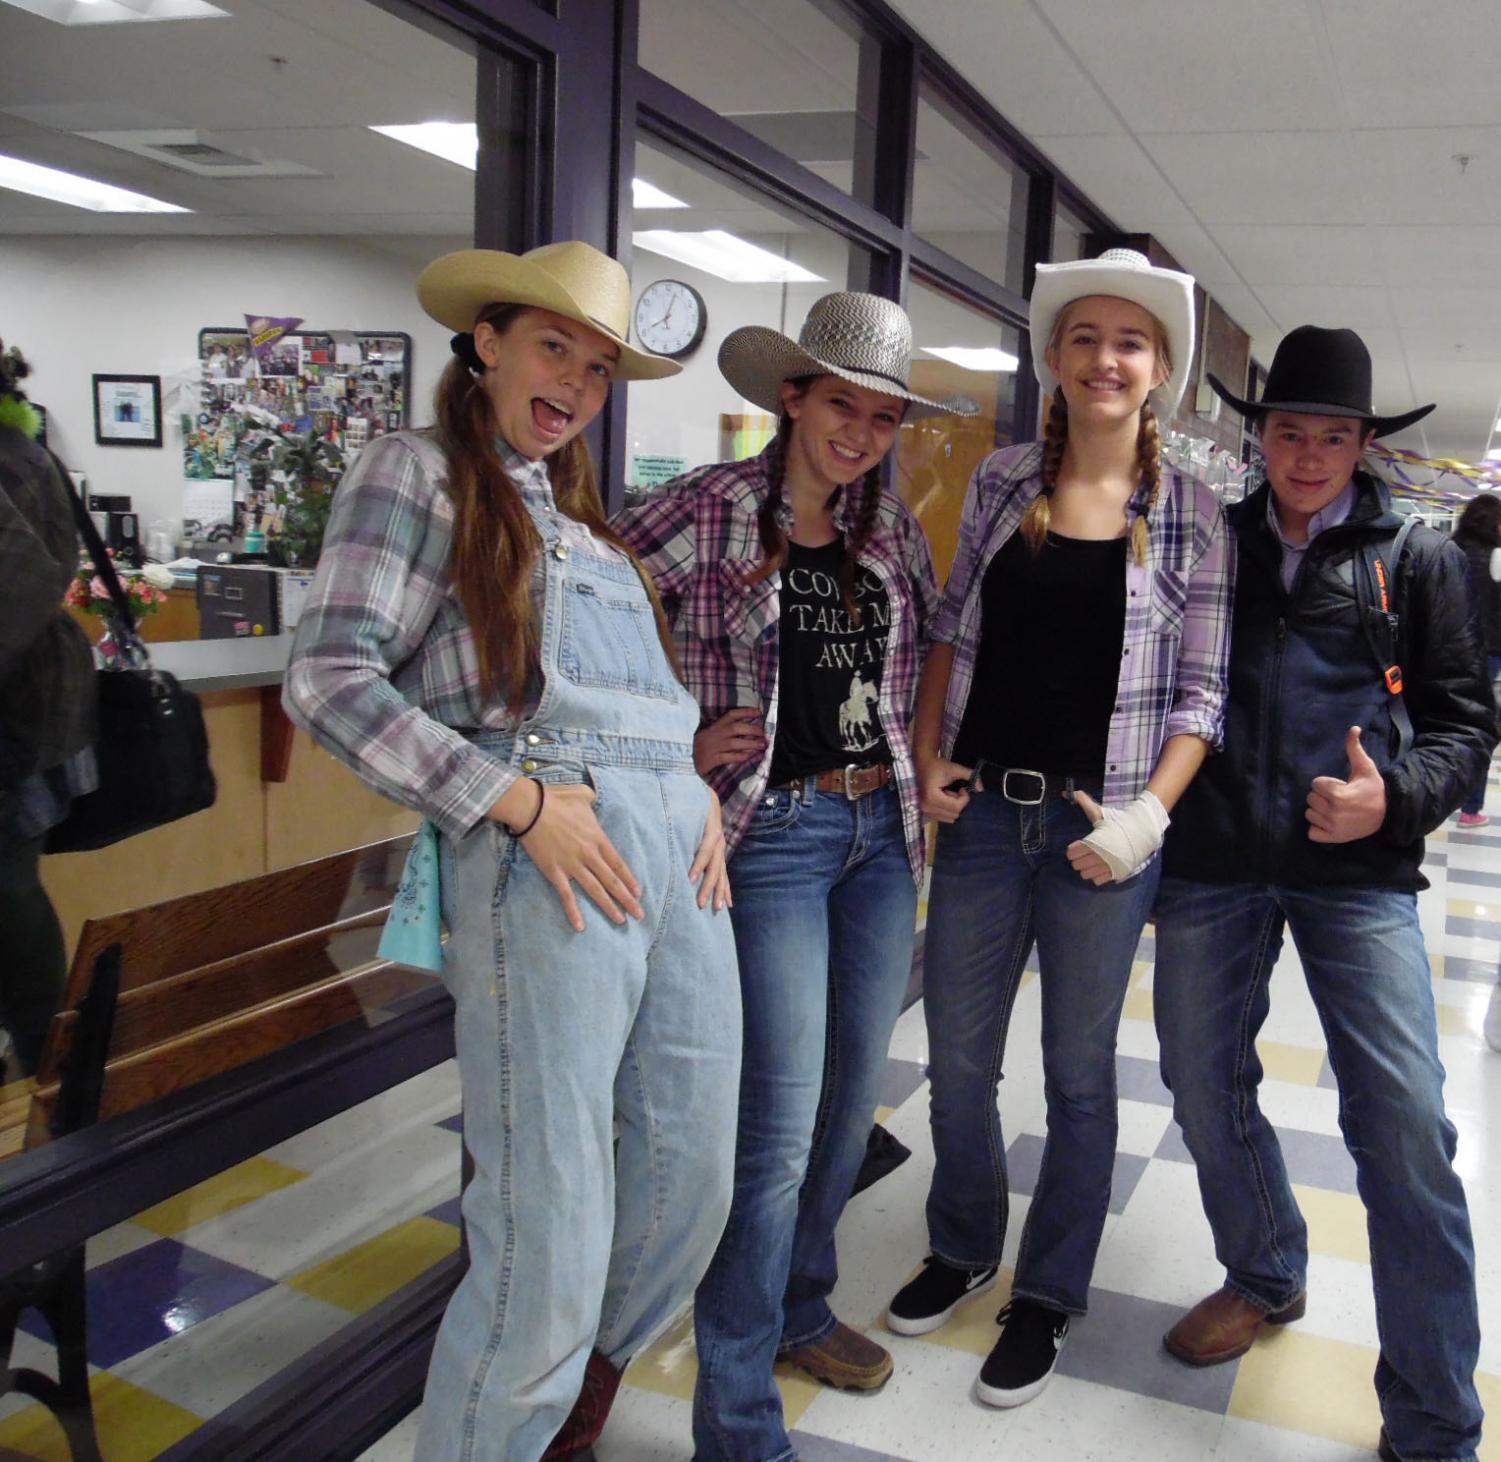 Howdy, pardners! Sisters Ryleah and Rainna Floyd join Abby Kokot and McClain Payne outside the attendance office on Cowboys versus Dinosaurs dress up day.